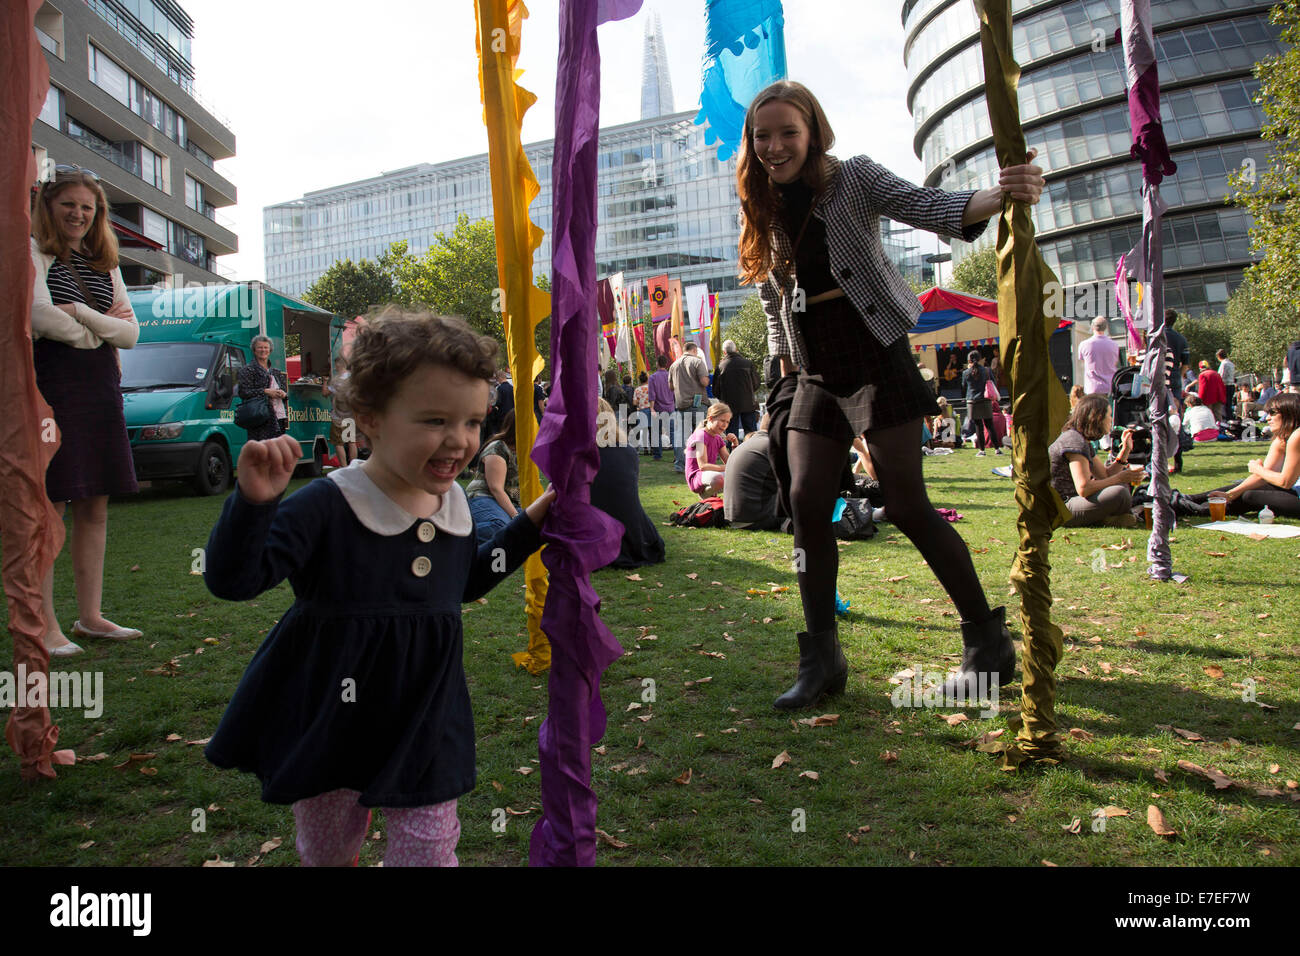 People gathering to hang out, listen to bands and other activities at the Blue Ribbon Village. Thames Festival London - Stock Image